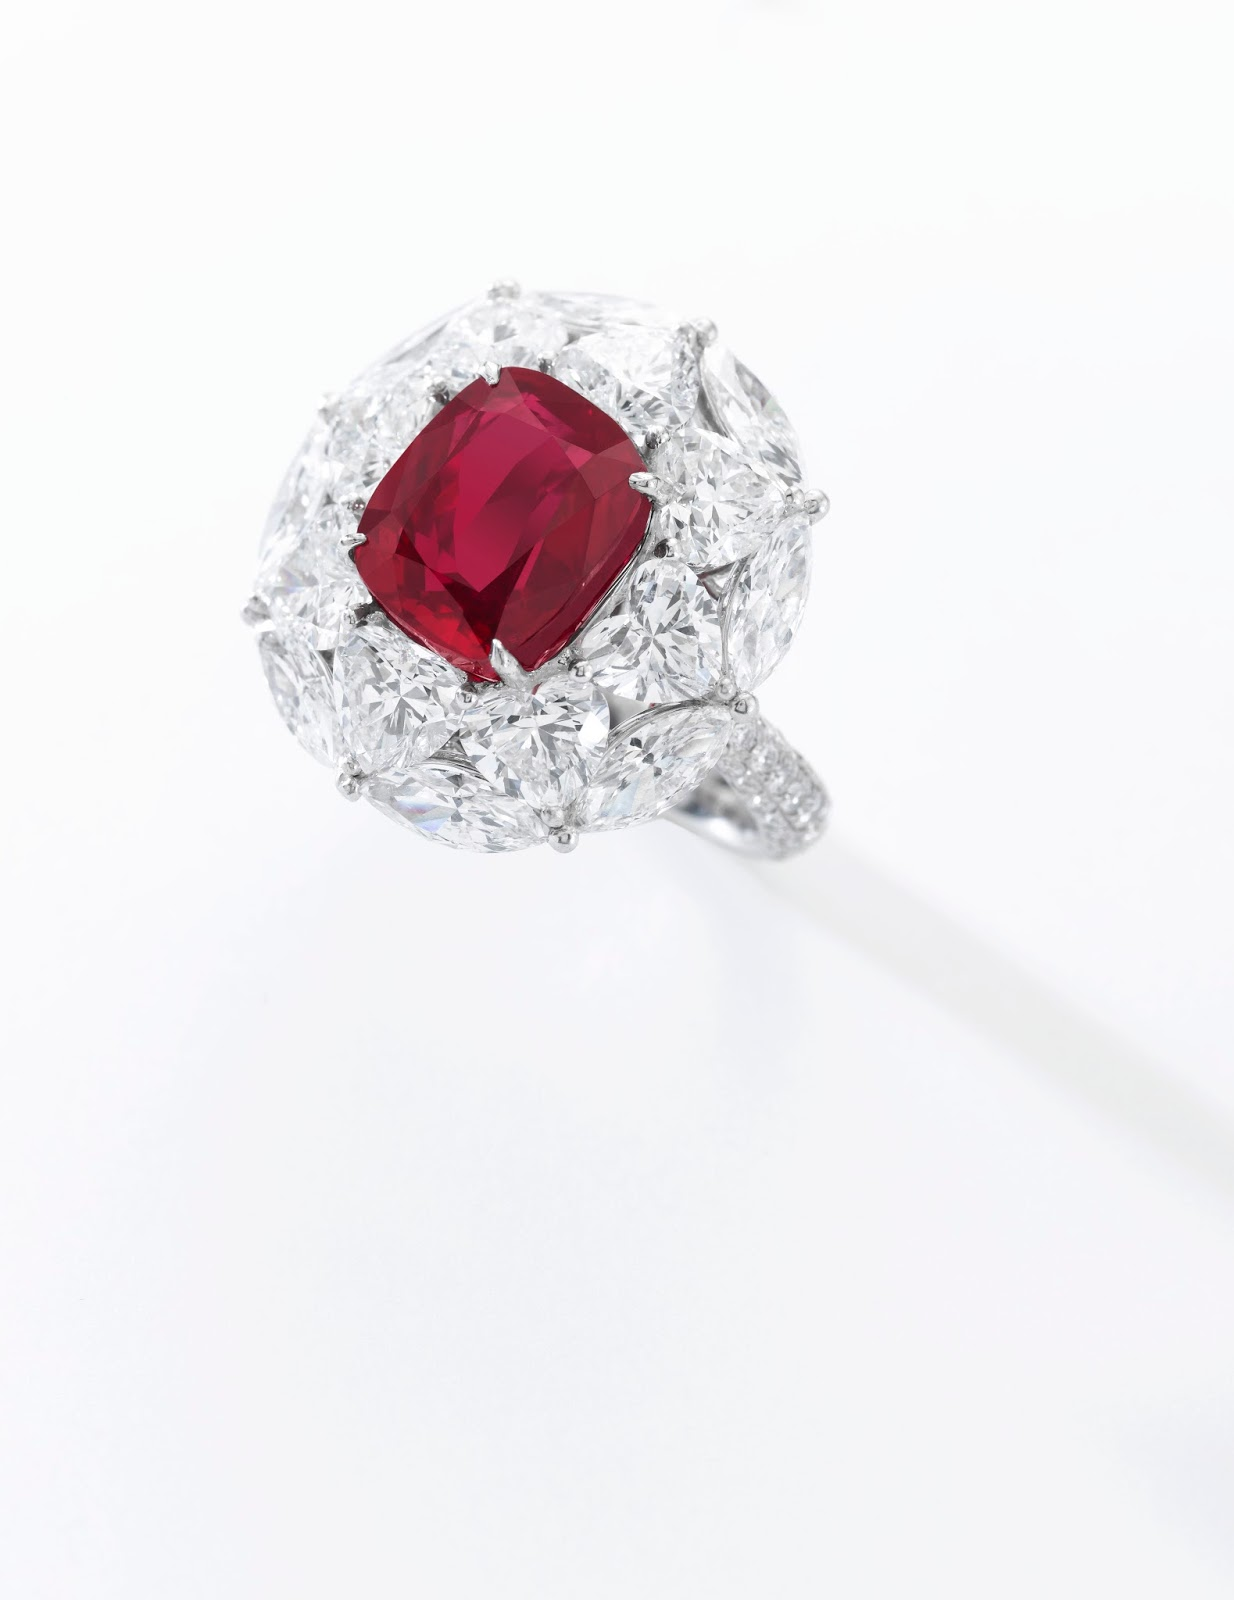 Lot 484 - The Emperor Ruby